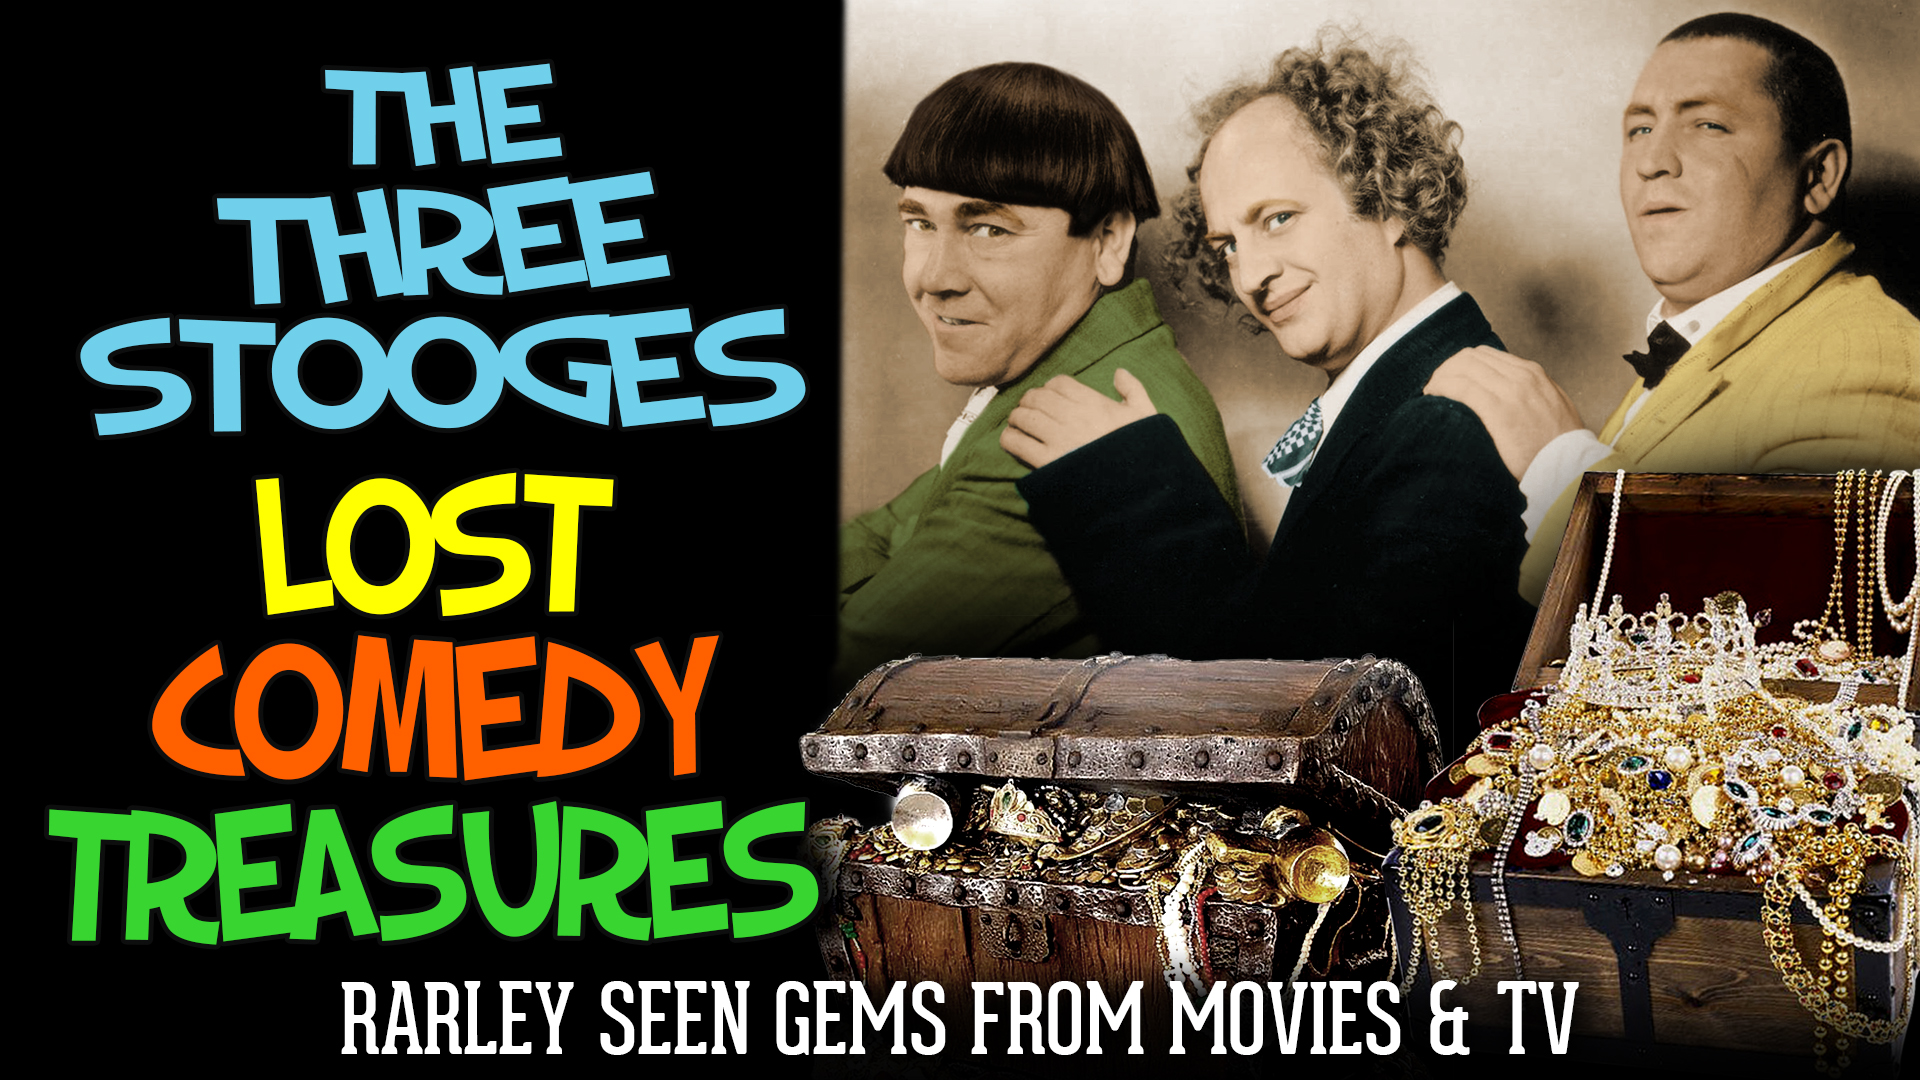 Three Stooges, Lost Comedy Treasures - Rarely Seen Gems From Movies & TV